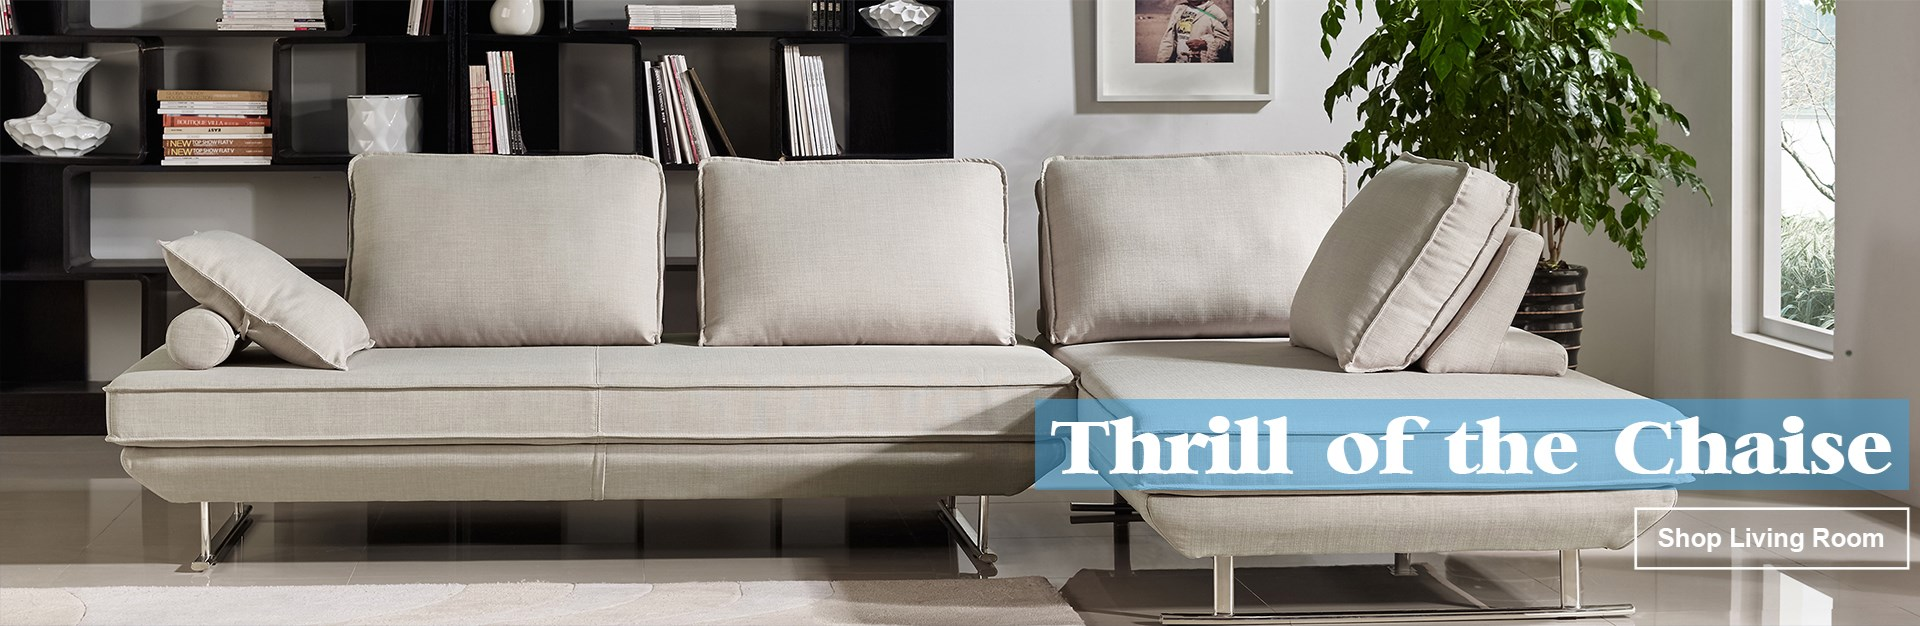 Thrill of Chaise